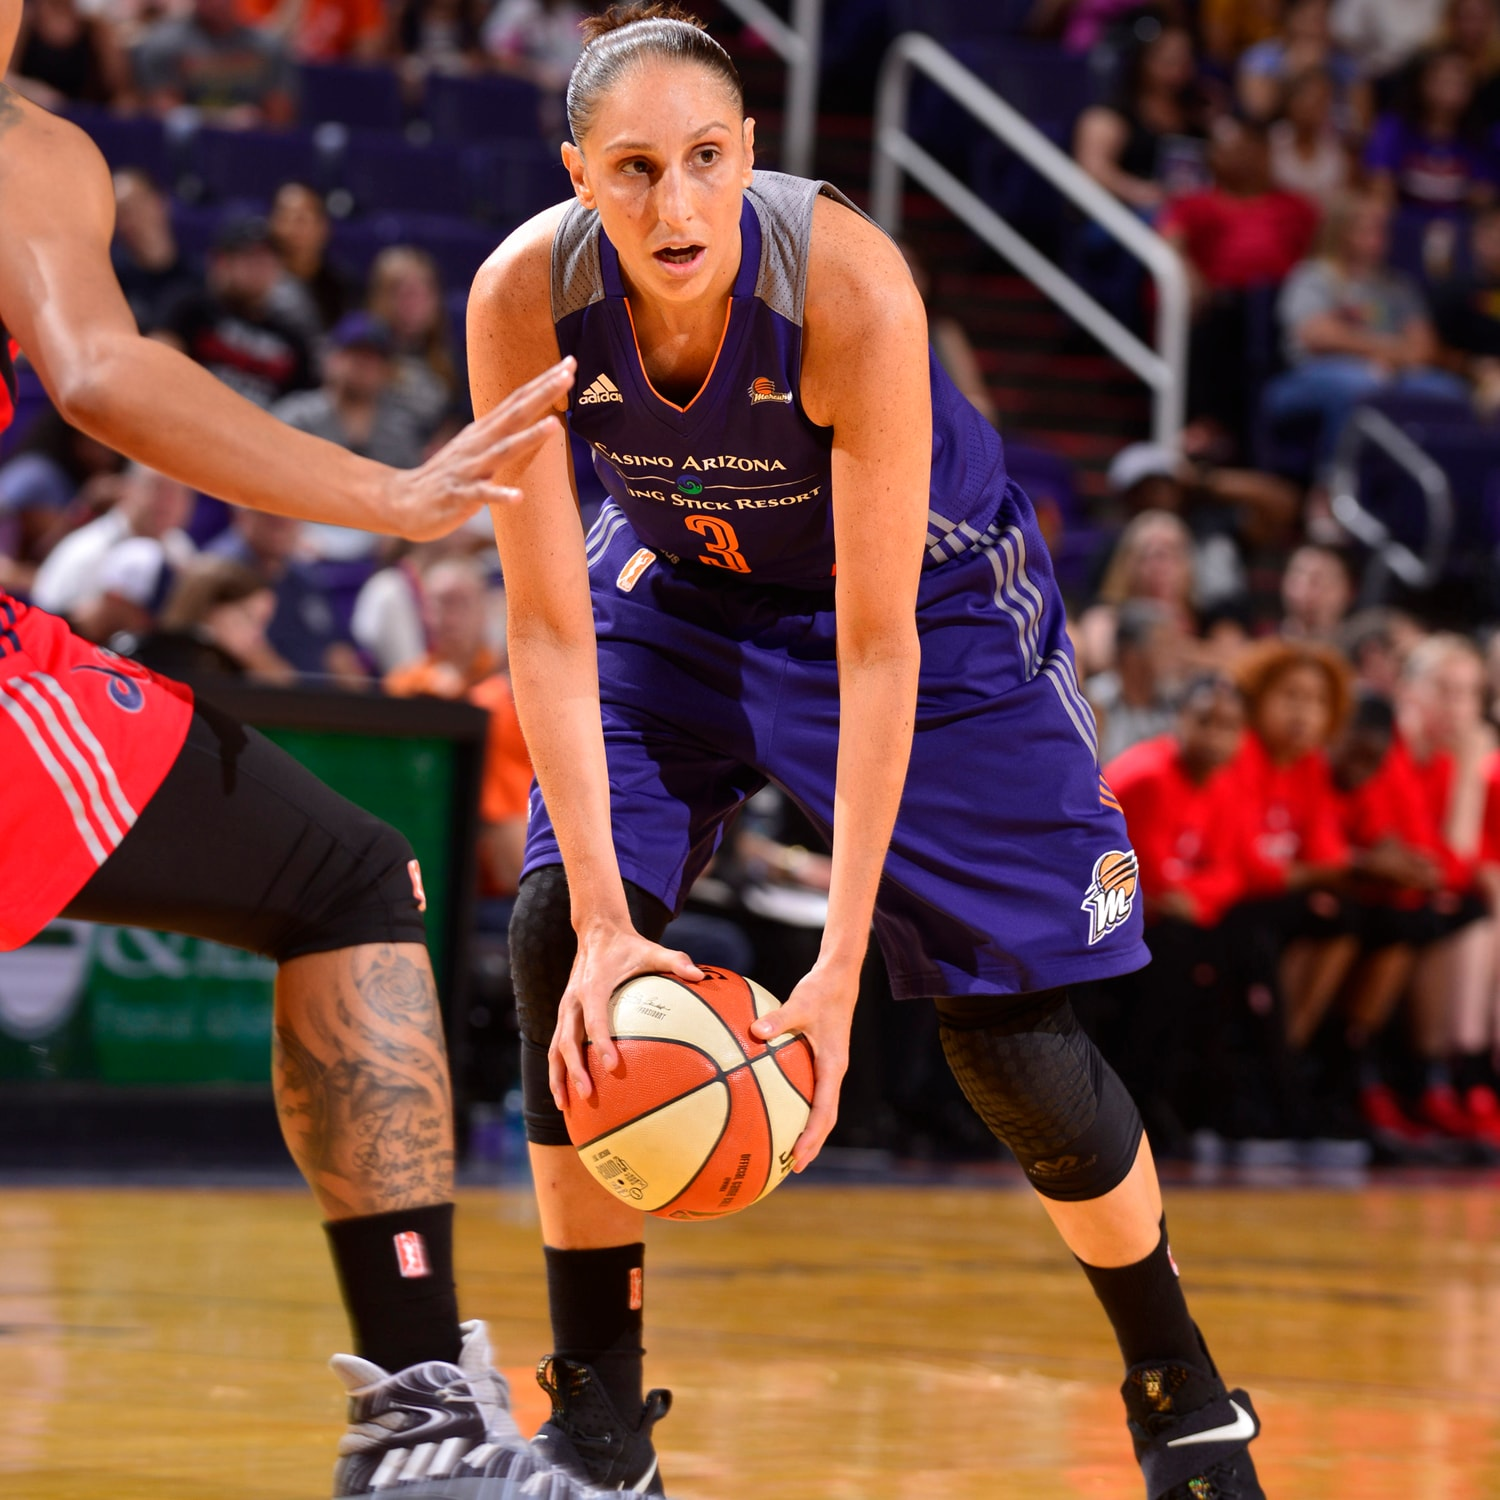 Diana Taurasi with the court vision